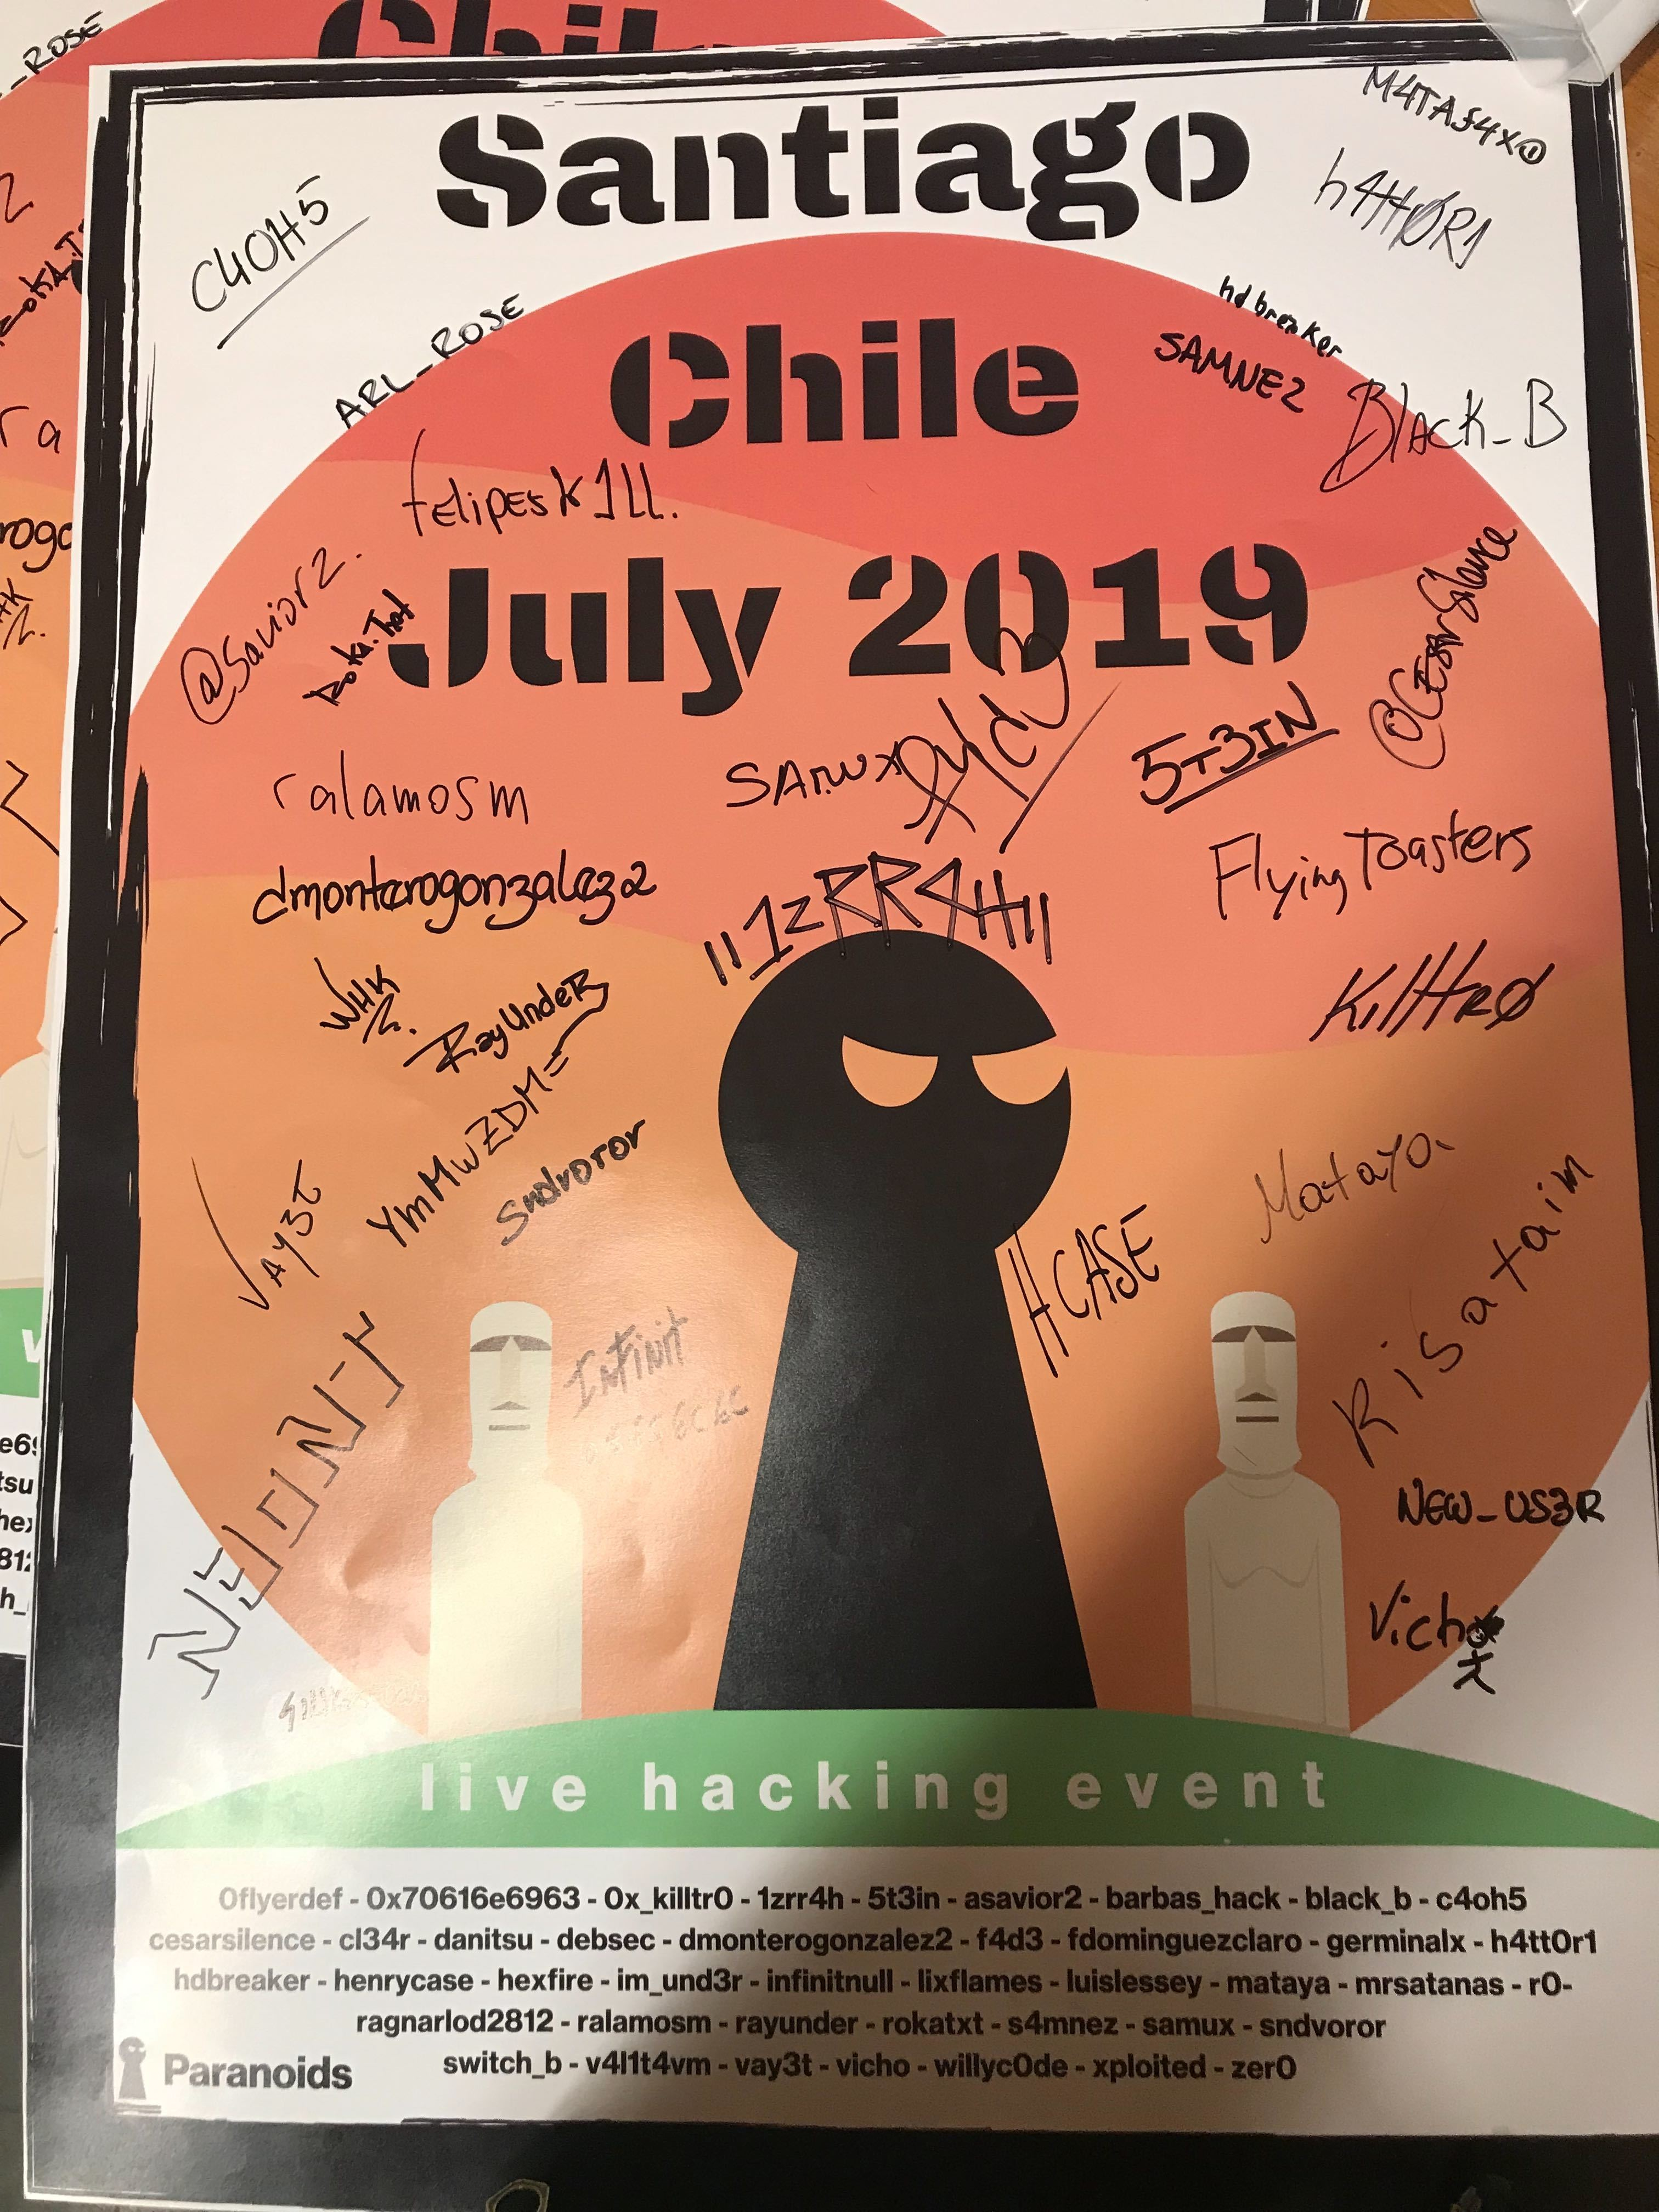 The organizers earned a signed copy of the event poster that all participants took home.